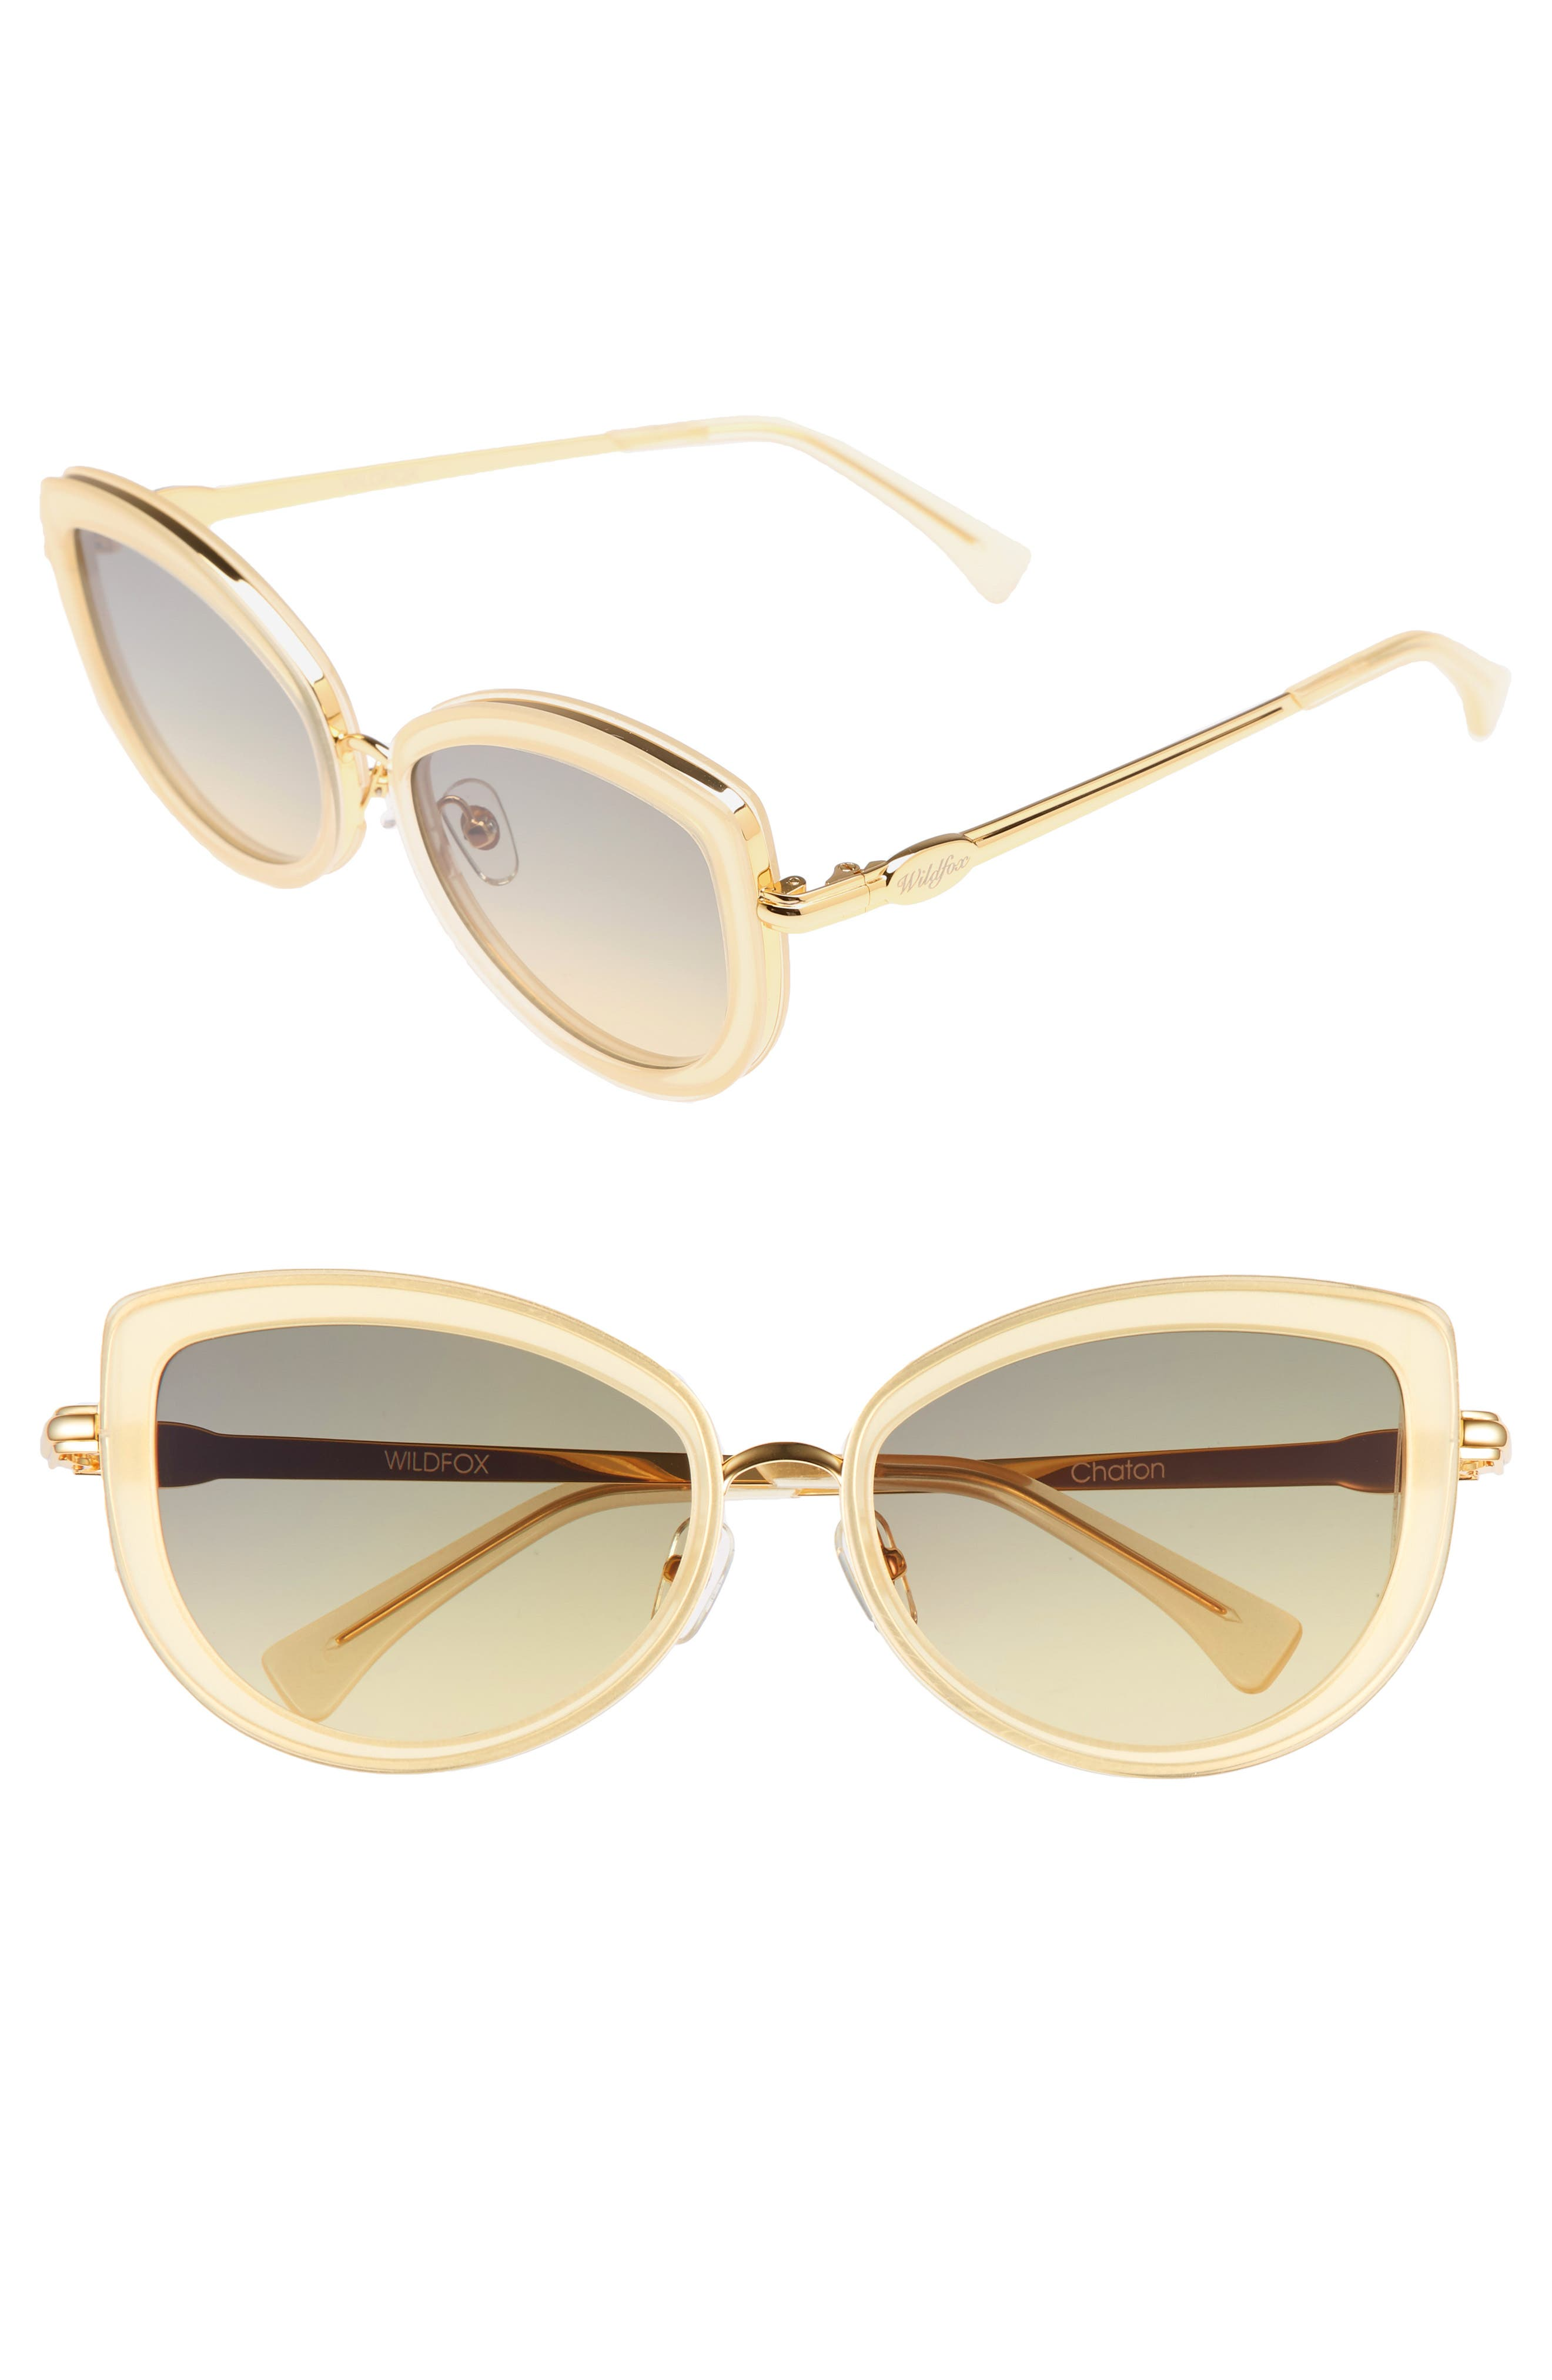 Wildfox Chaton 54mm Sunglasses